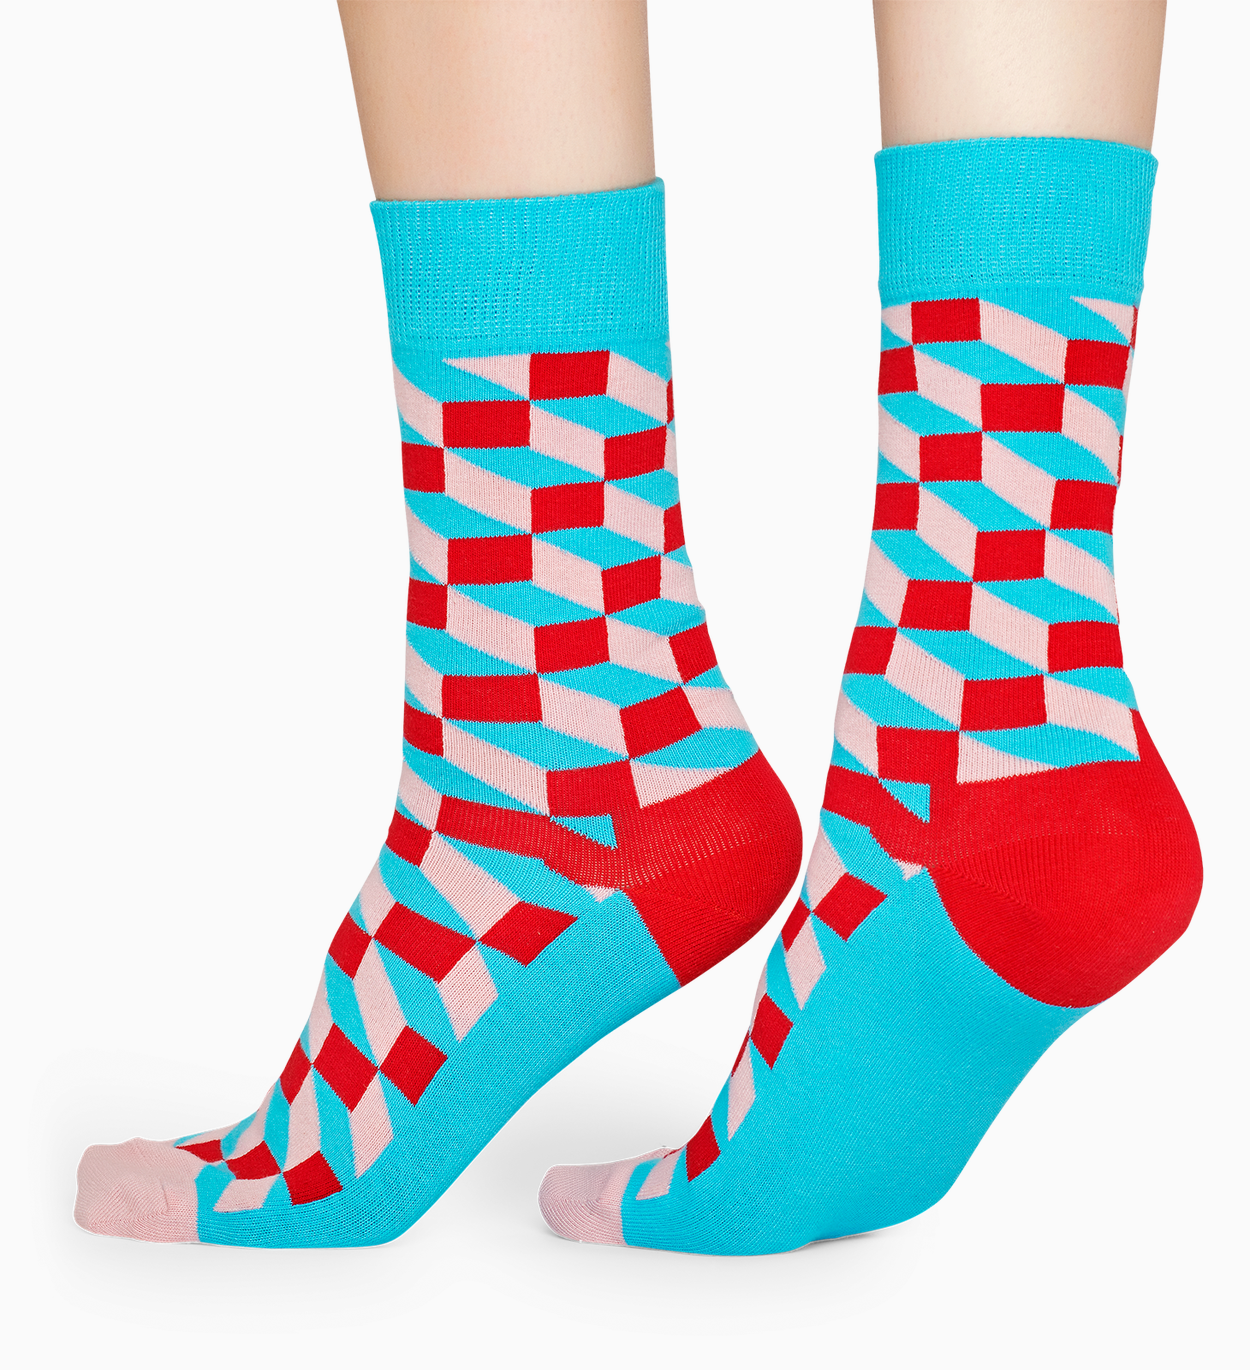 Red cotton socks: Filled Optic pattern | Happy Socks